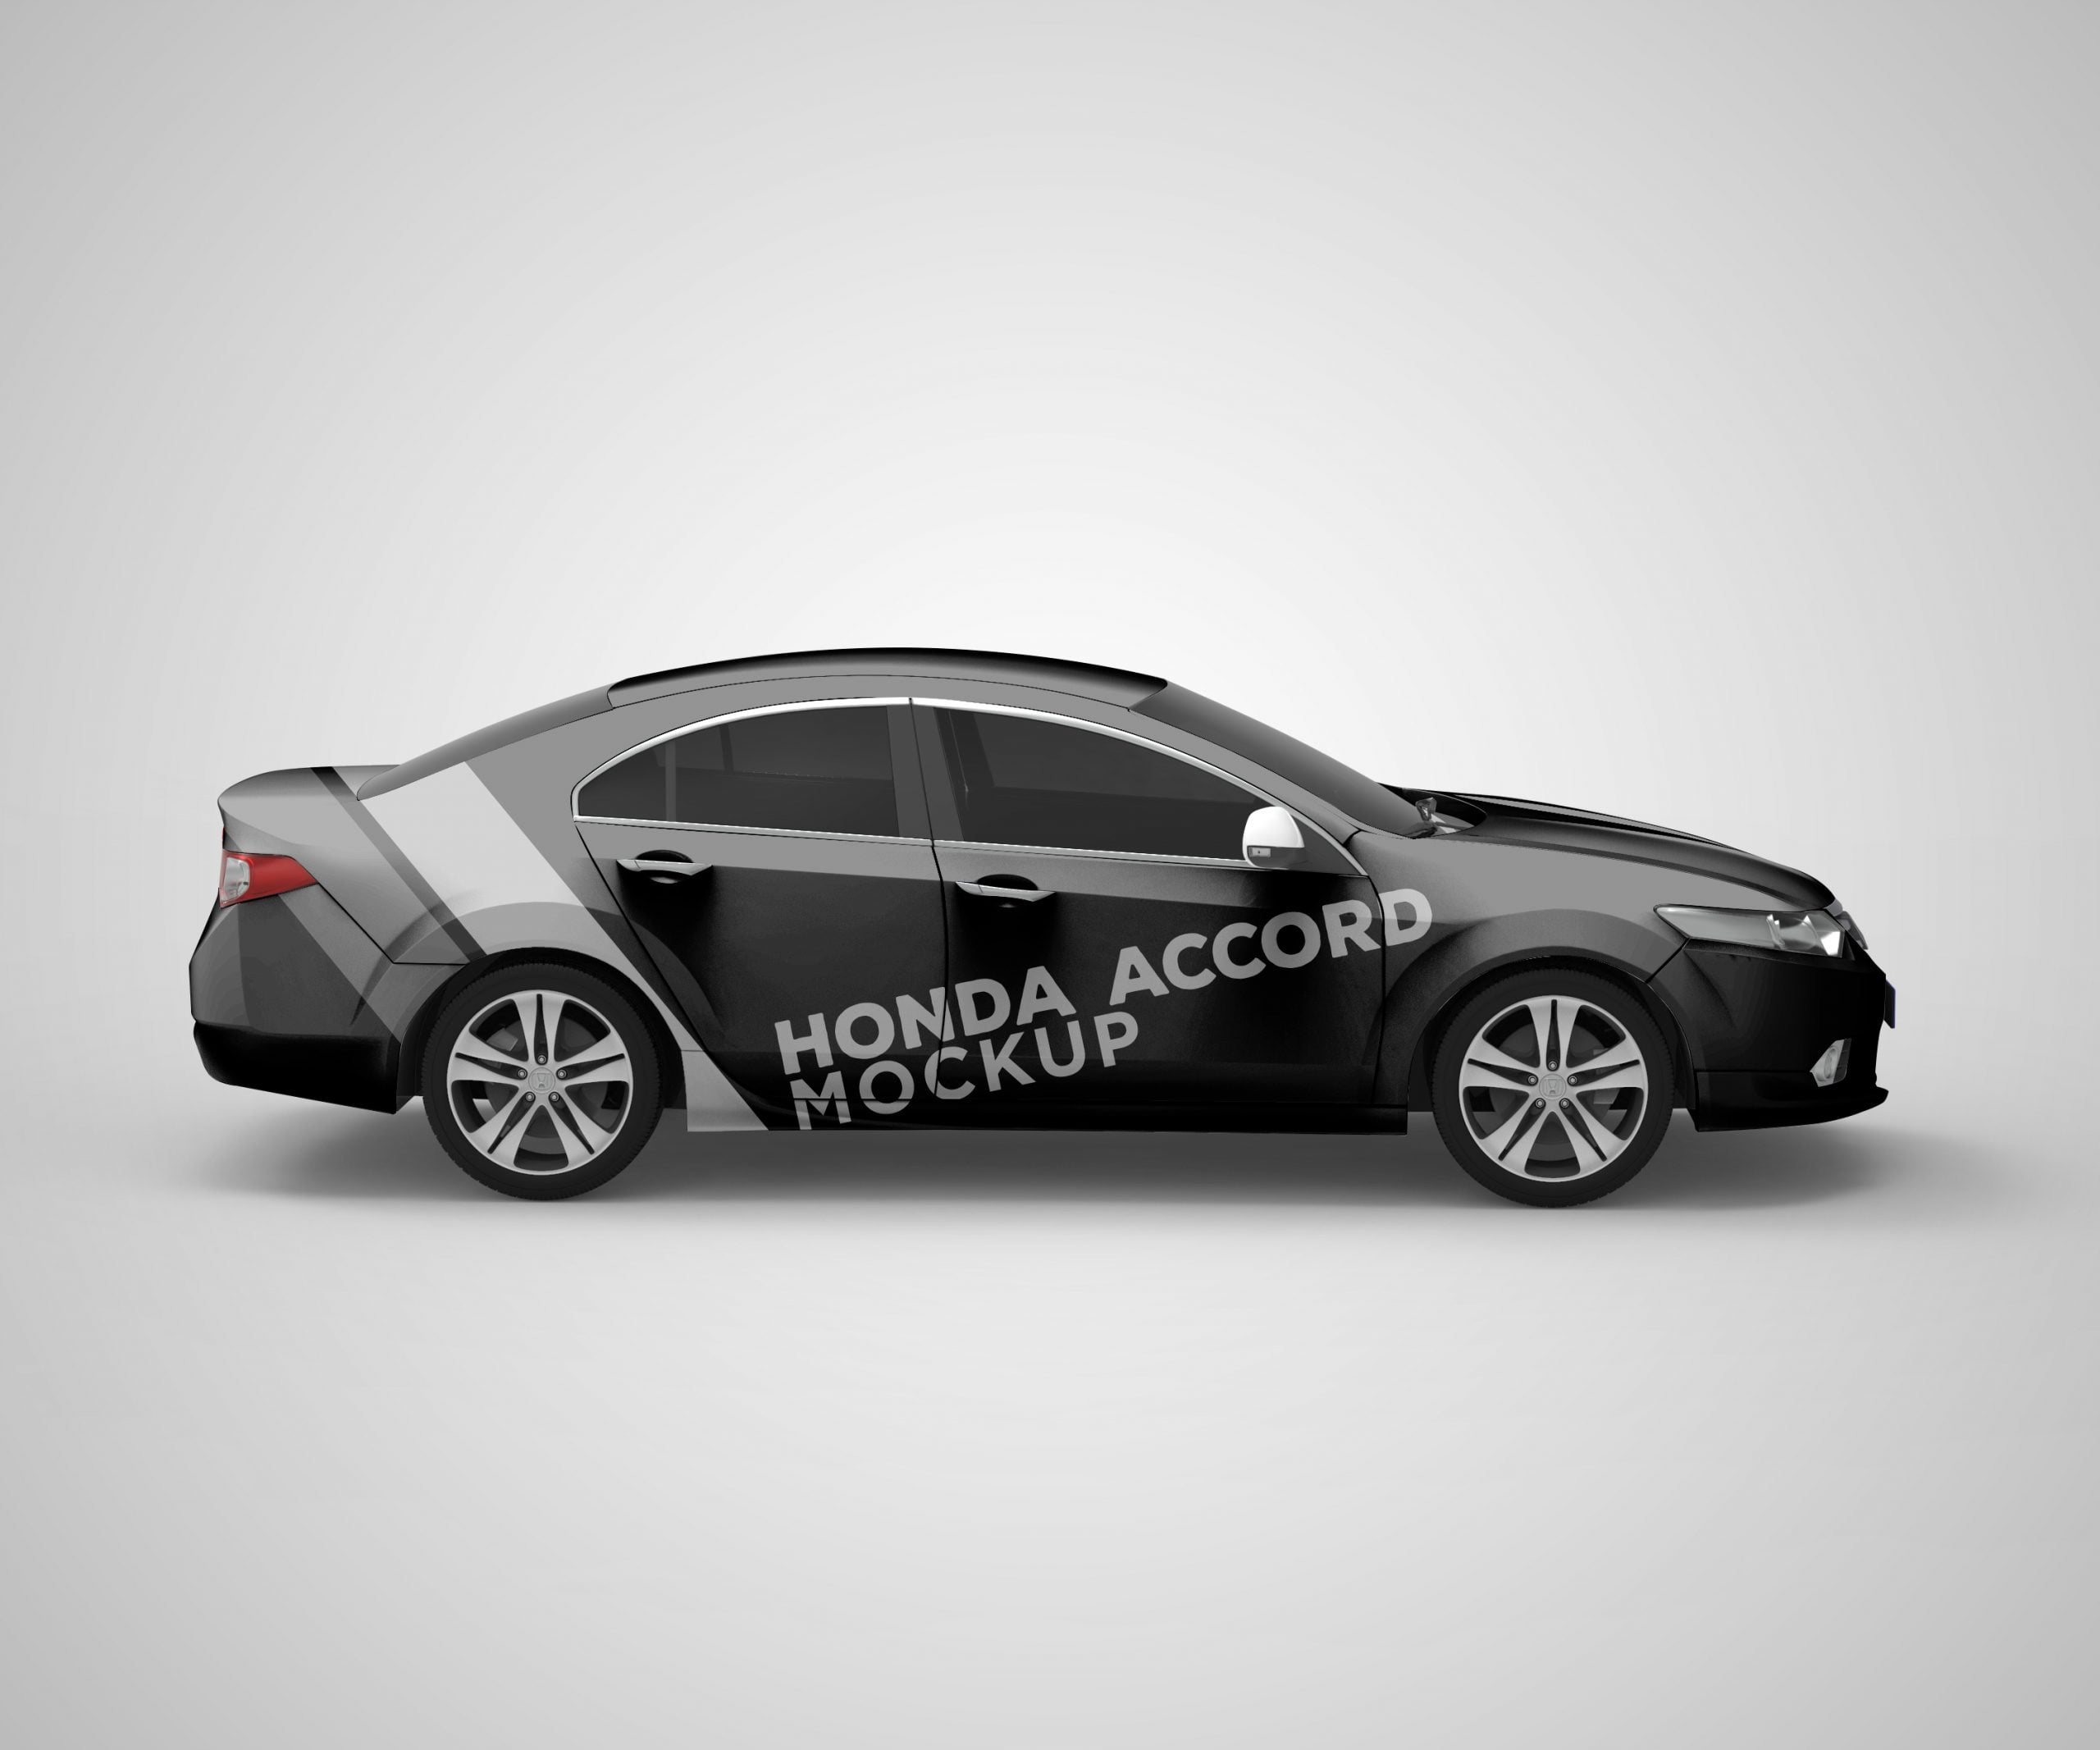 Download-Free-Honda-Accord-Mockup